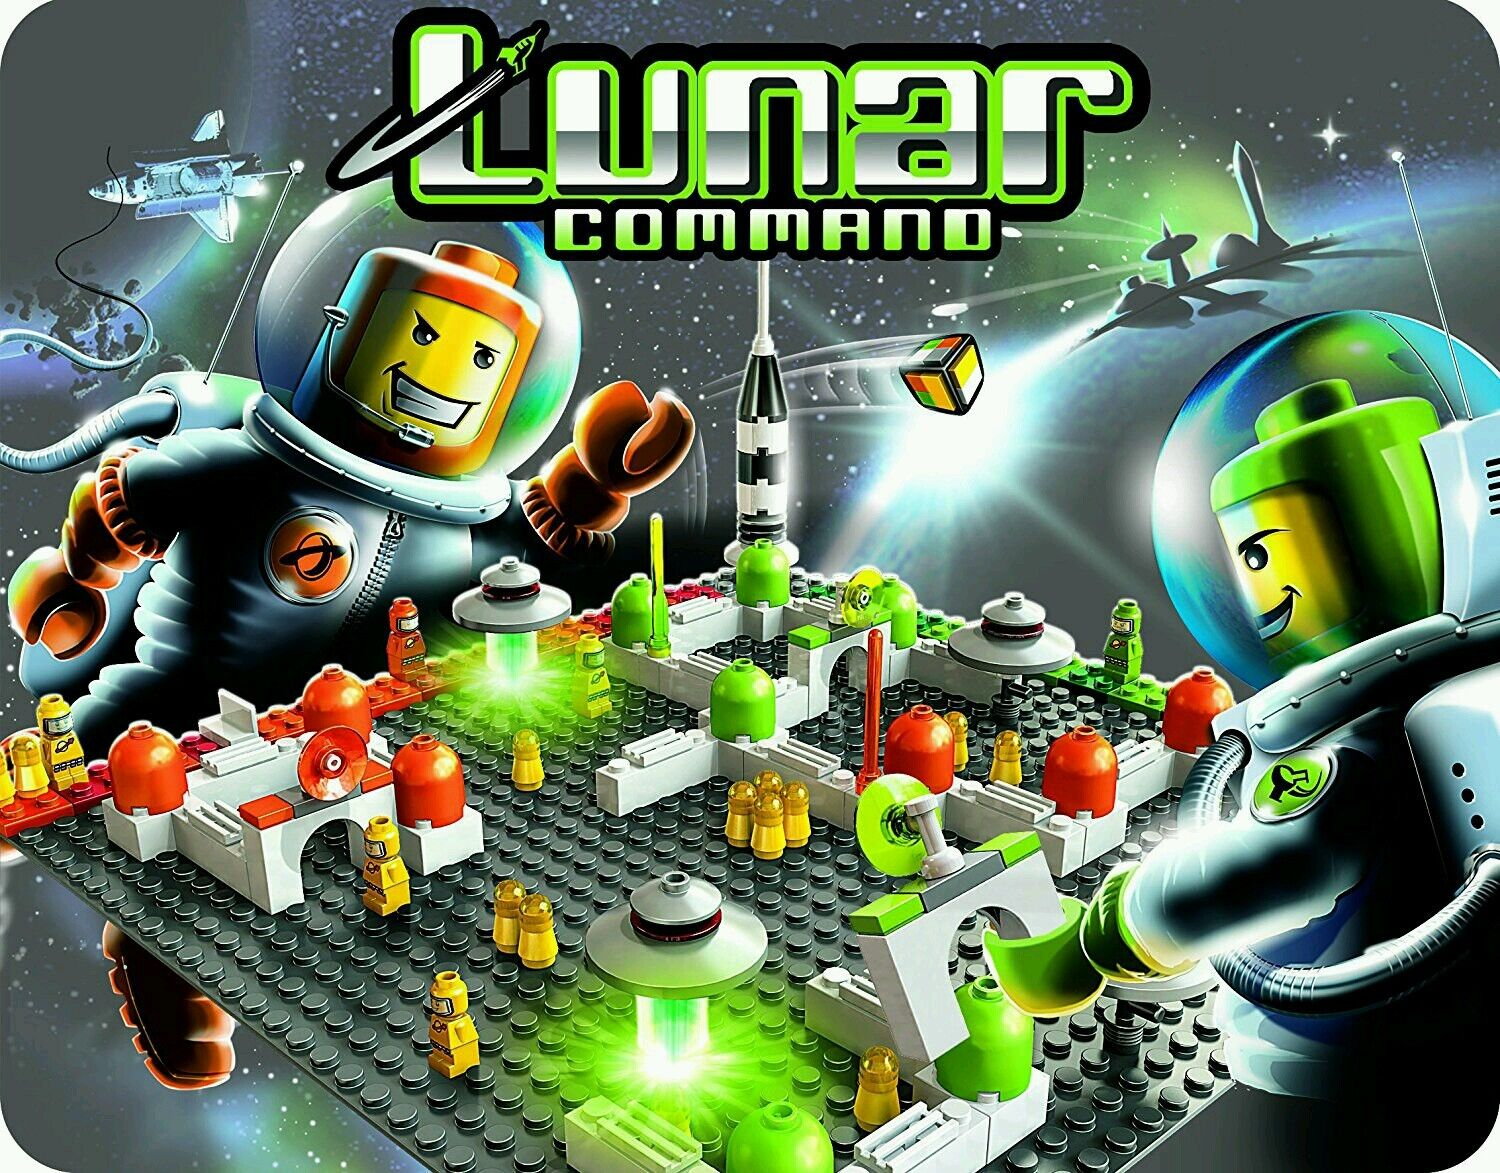 LEGO LEGO LEGO GAMES   3842 LUNAR COMMAND  RARE  BUILD & PLAY   BNIB NEW SEALED✔ FAST P&P✔ 16f285